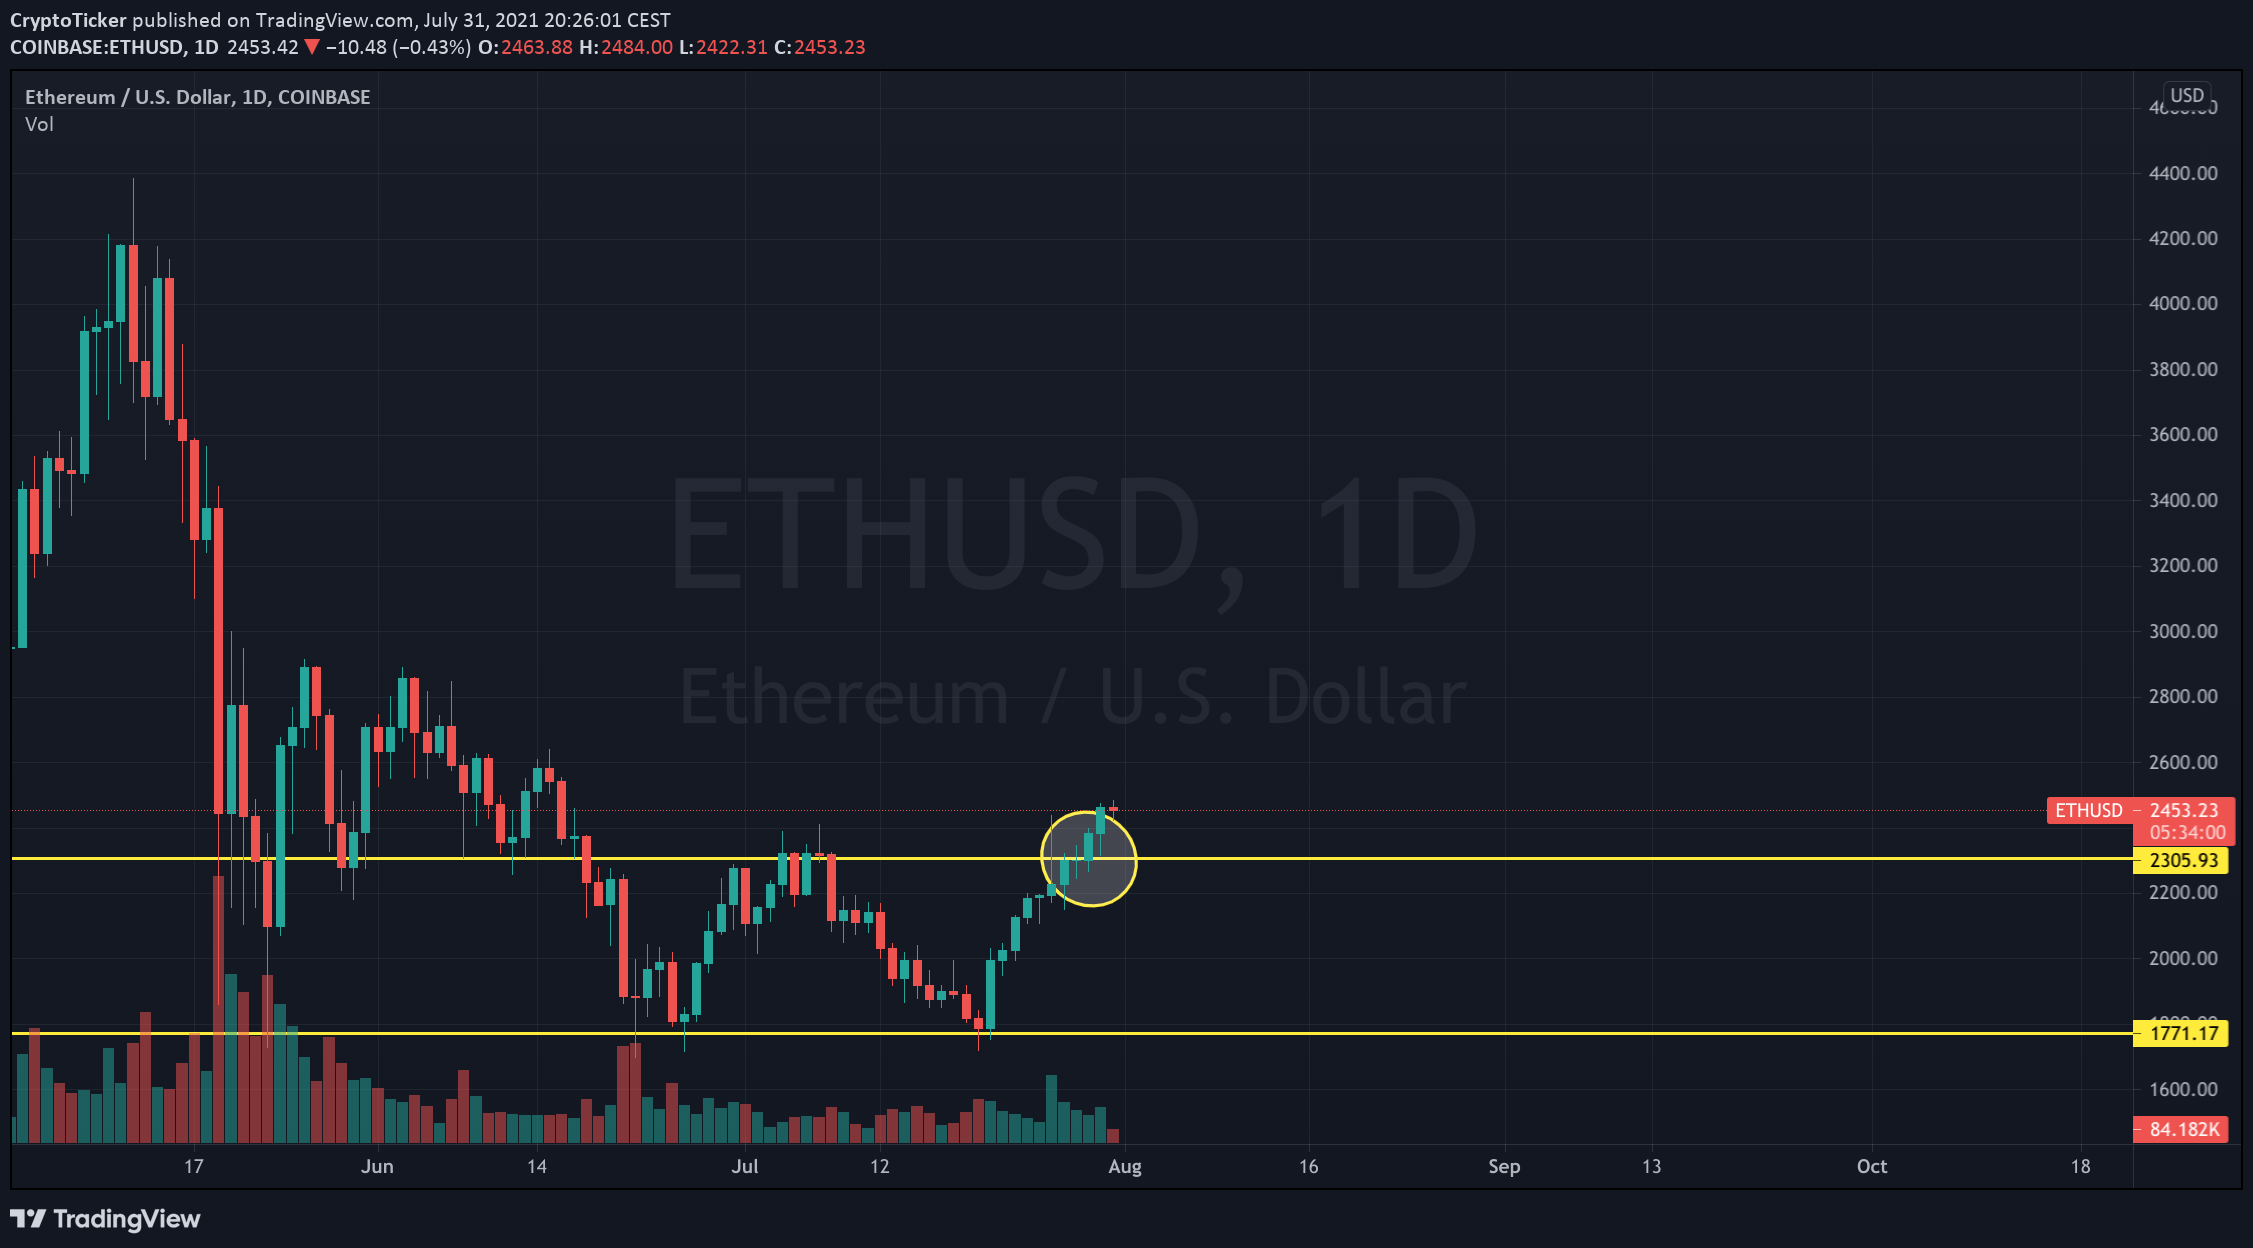 Ethereum Price Prediction - ETH/USD 1-day chart showing a break in the resistance price upwards...Ether 3K soon?